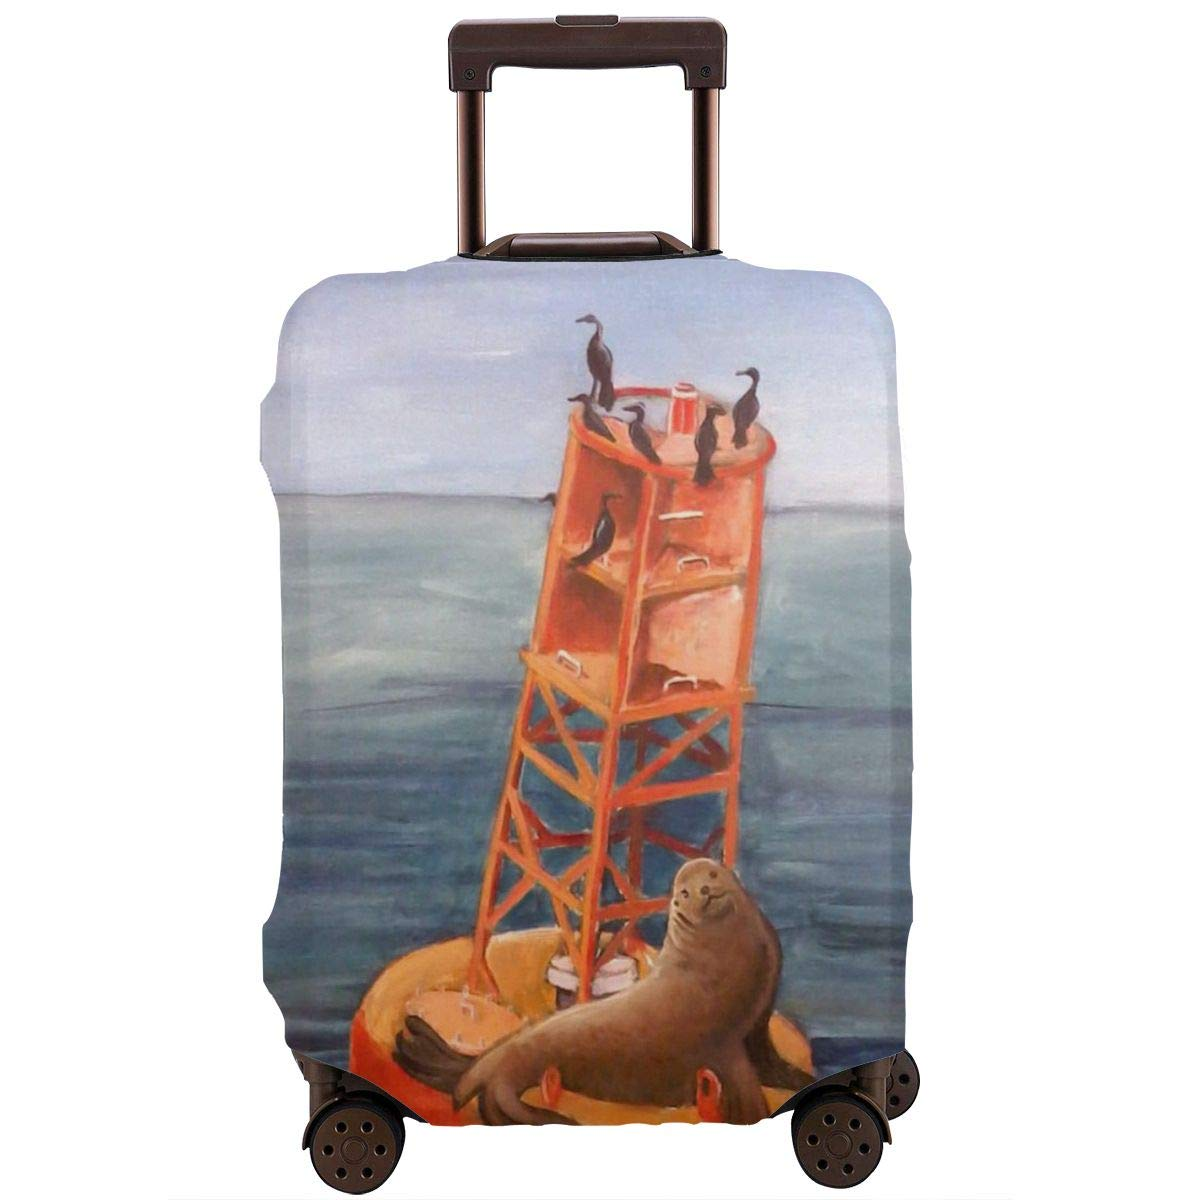 Yuotry Travel Luggage Cover Sea Lions On Buoy Zipper Suitcase Protector Luggage with Fixed Buckle Fits 18-32 Inch Luggage XL